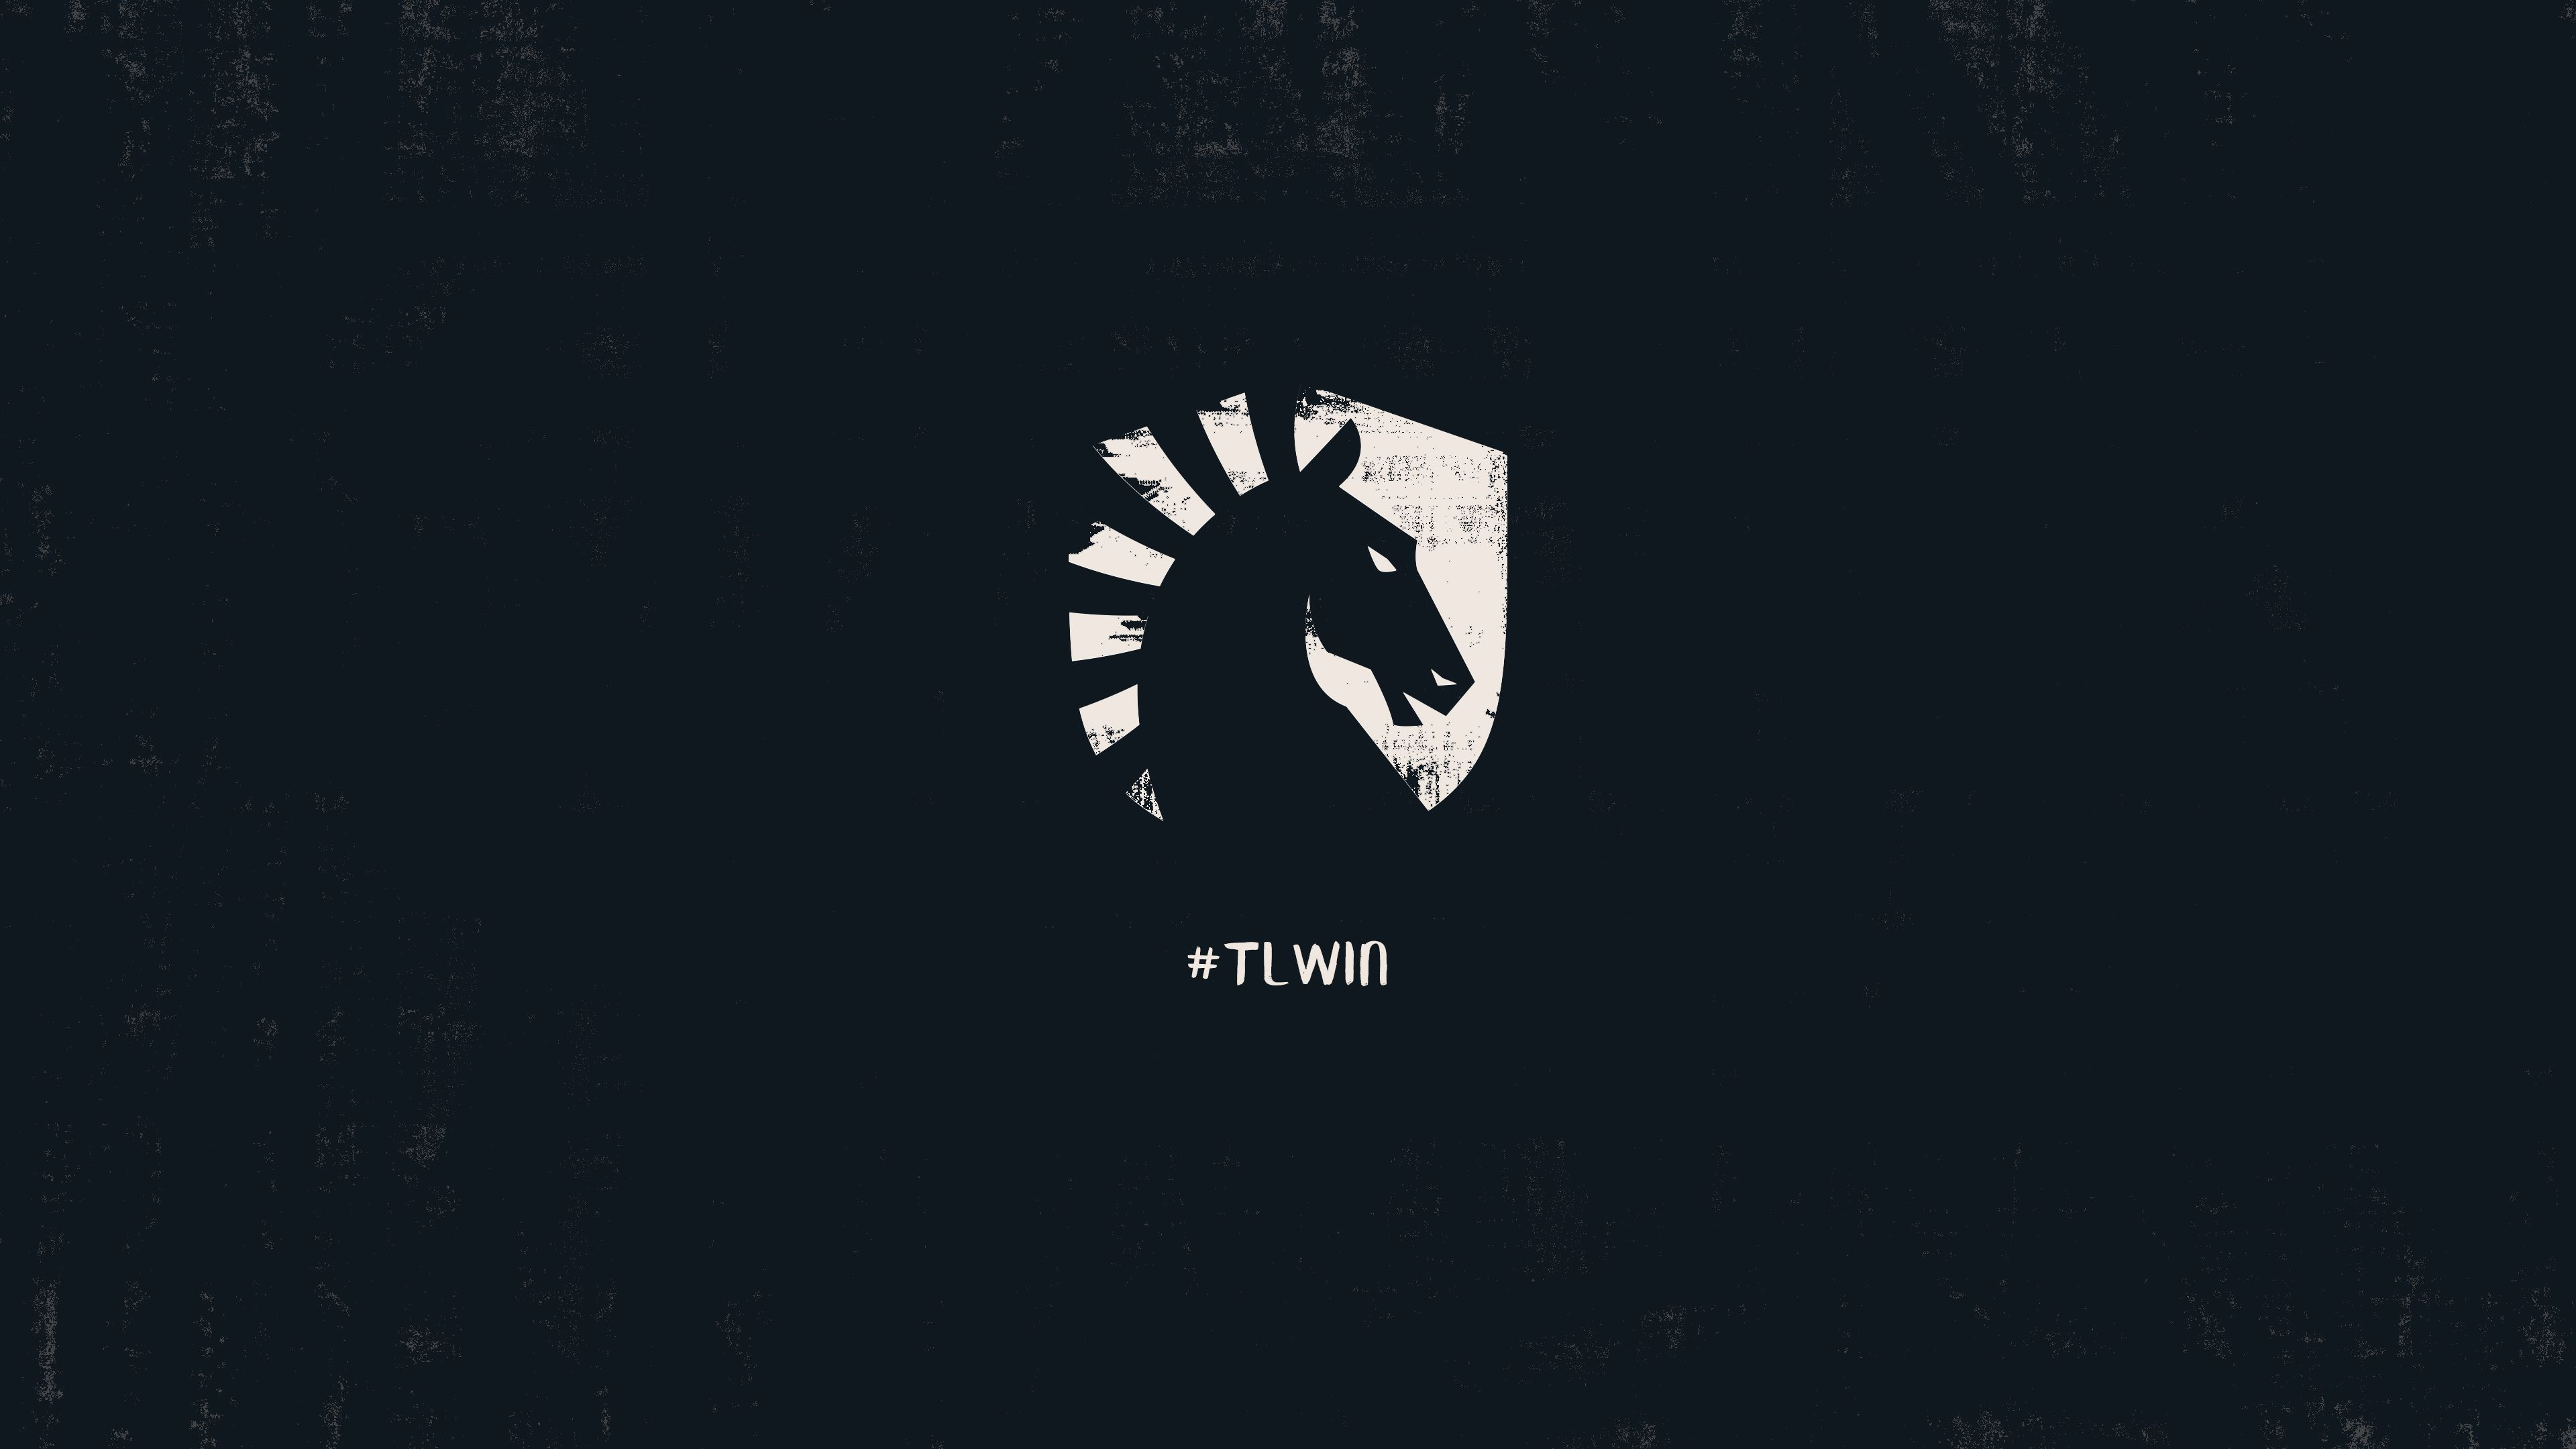 Team Liquid Wallpapers   Top Team Liquid Backgrounds 3840x2160